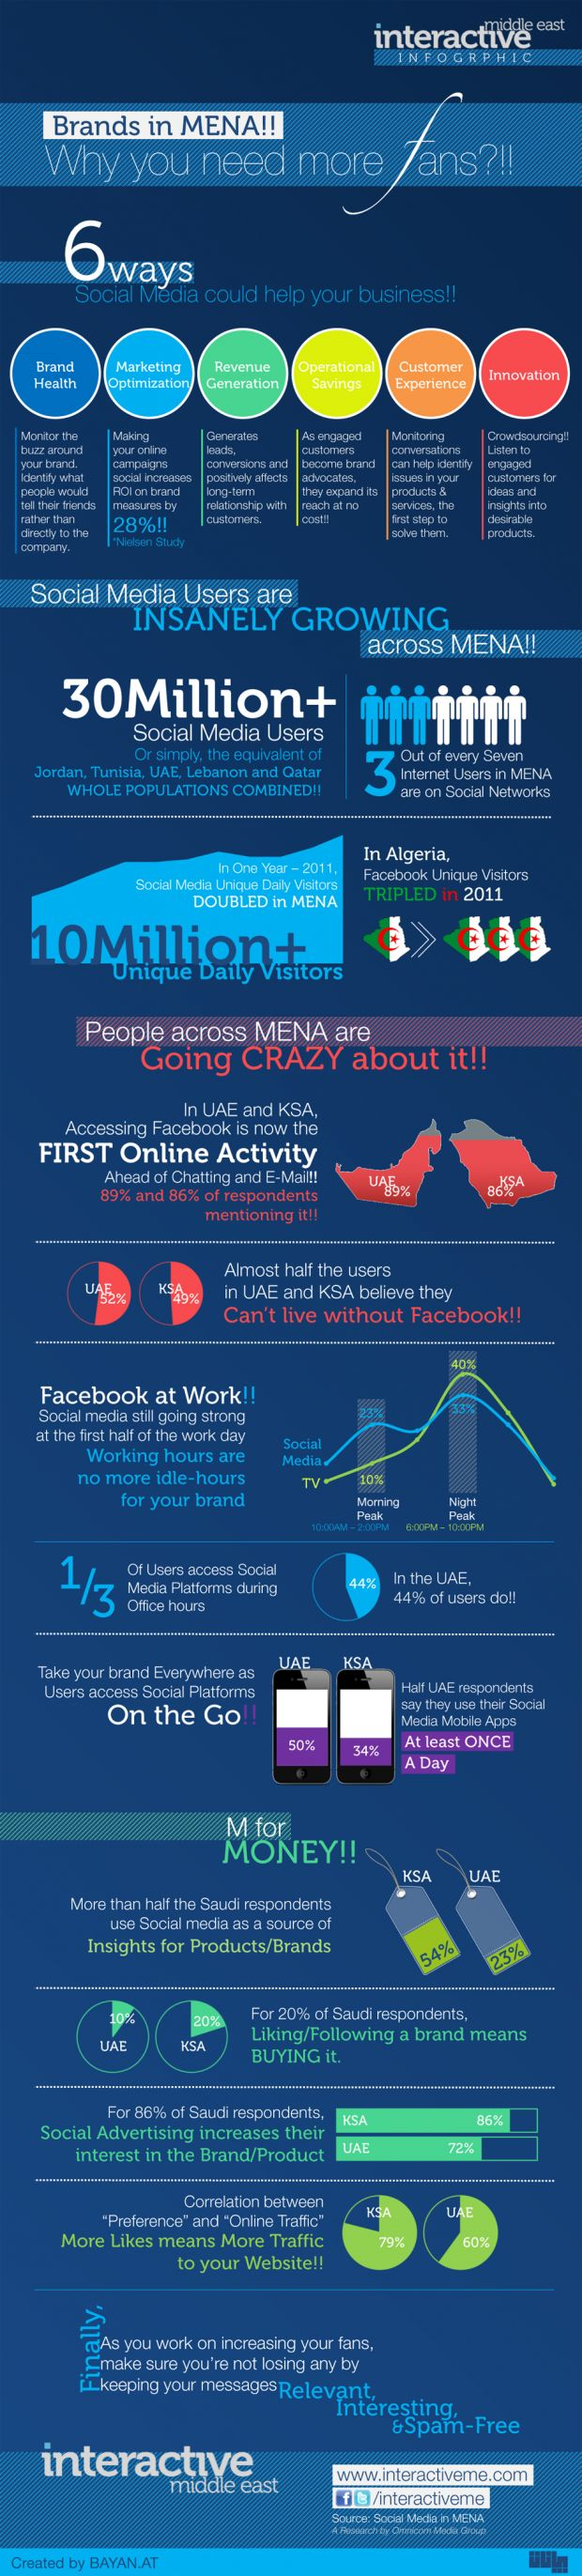 Social media for brands in the Middle East